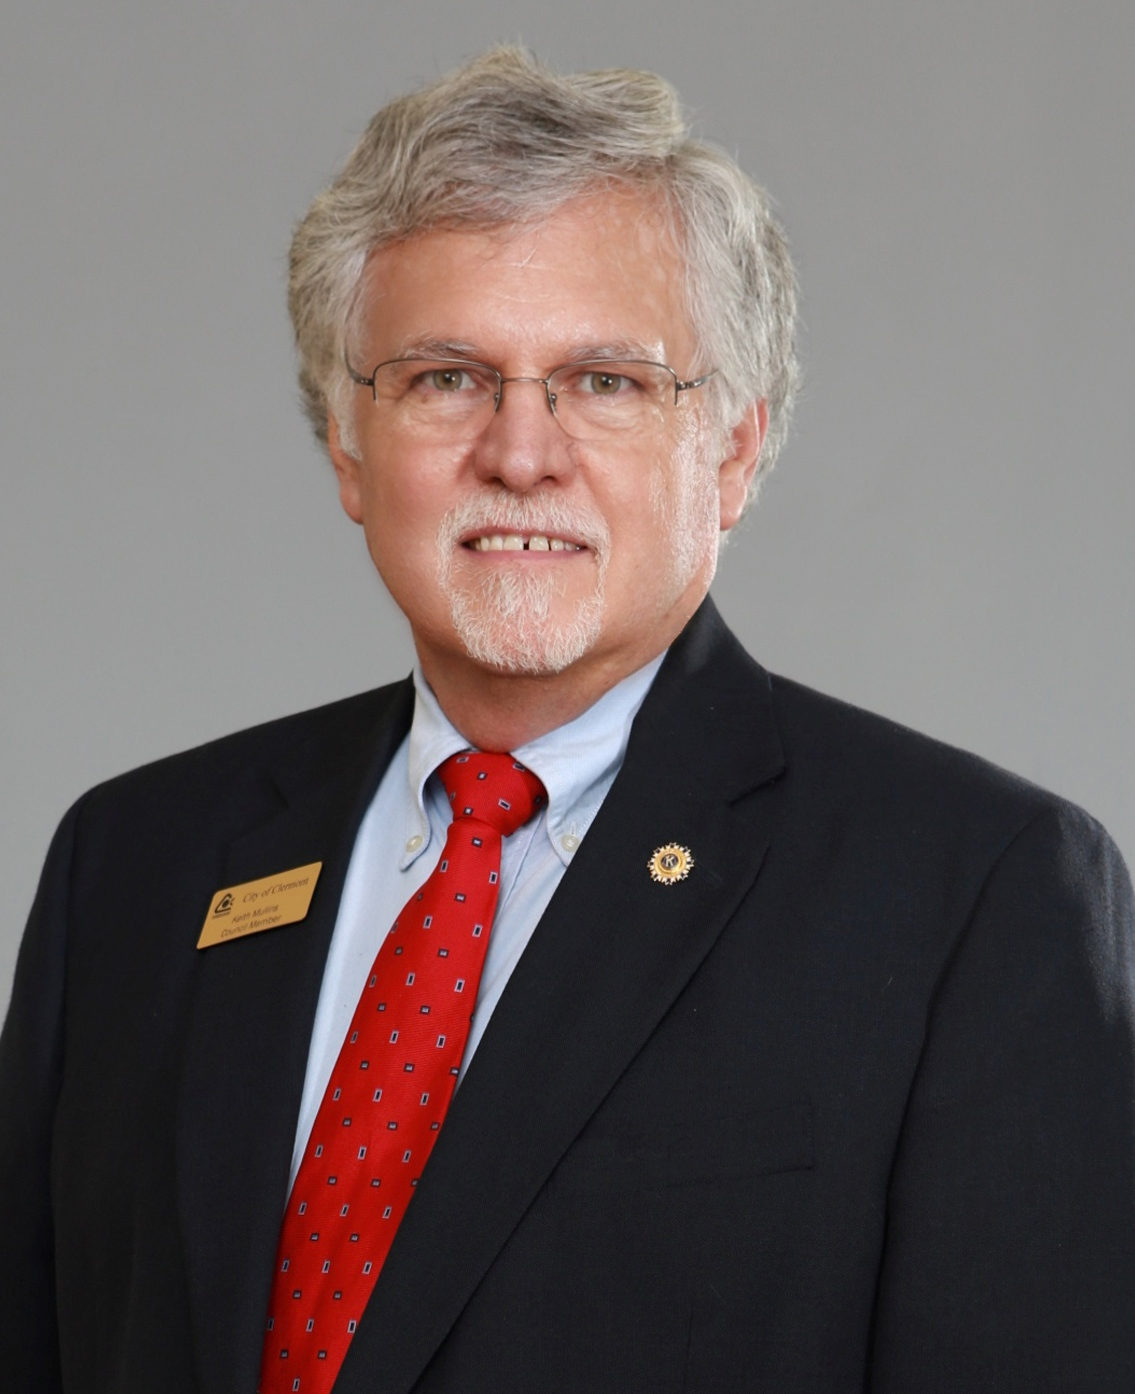 Council Member Keith Mullins